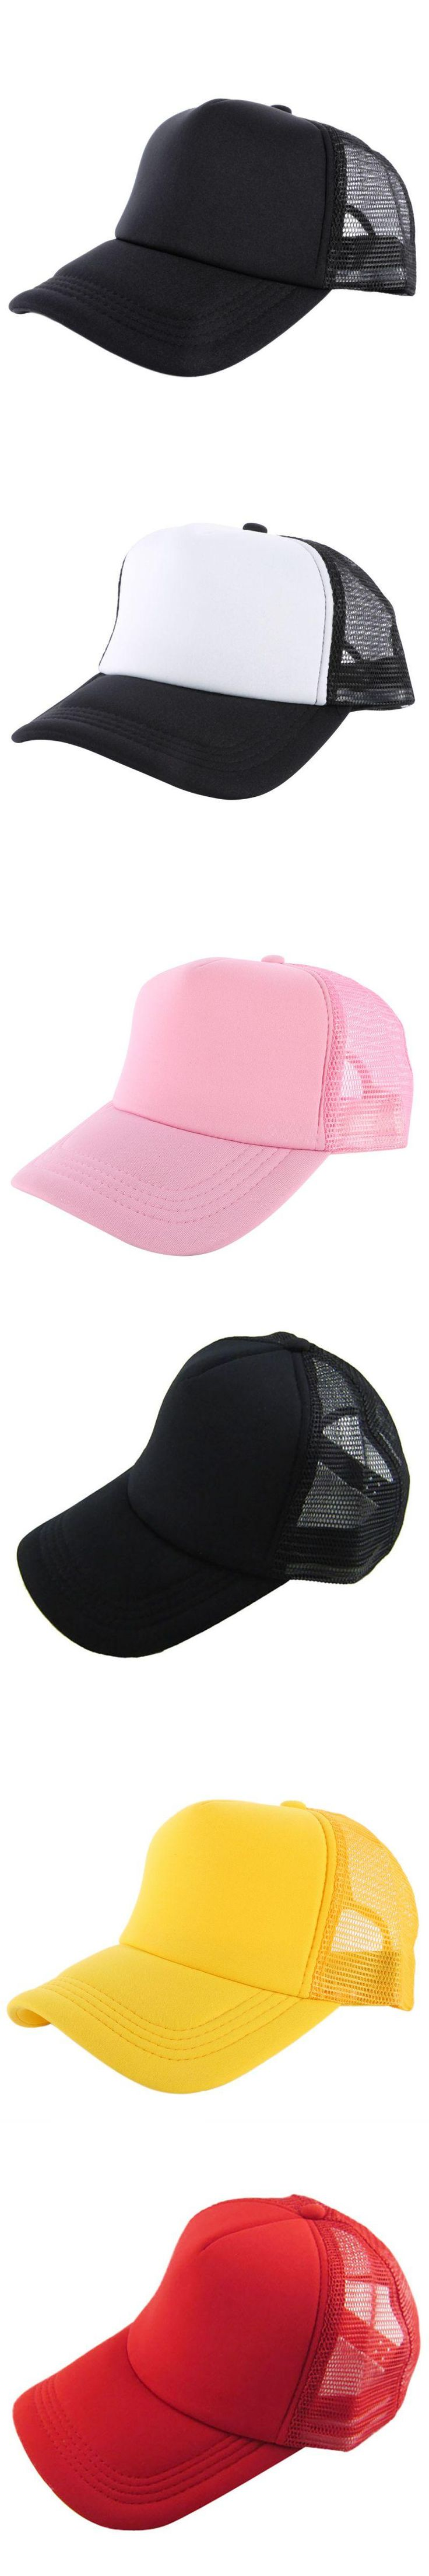 Factory Price! Unisex Attractive Casual Fashion Men Women Summer Hat Solid Baseball Cap Trucker Mesh Blank Visor Hats Adjustable